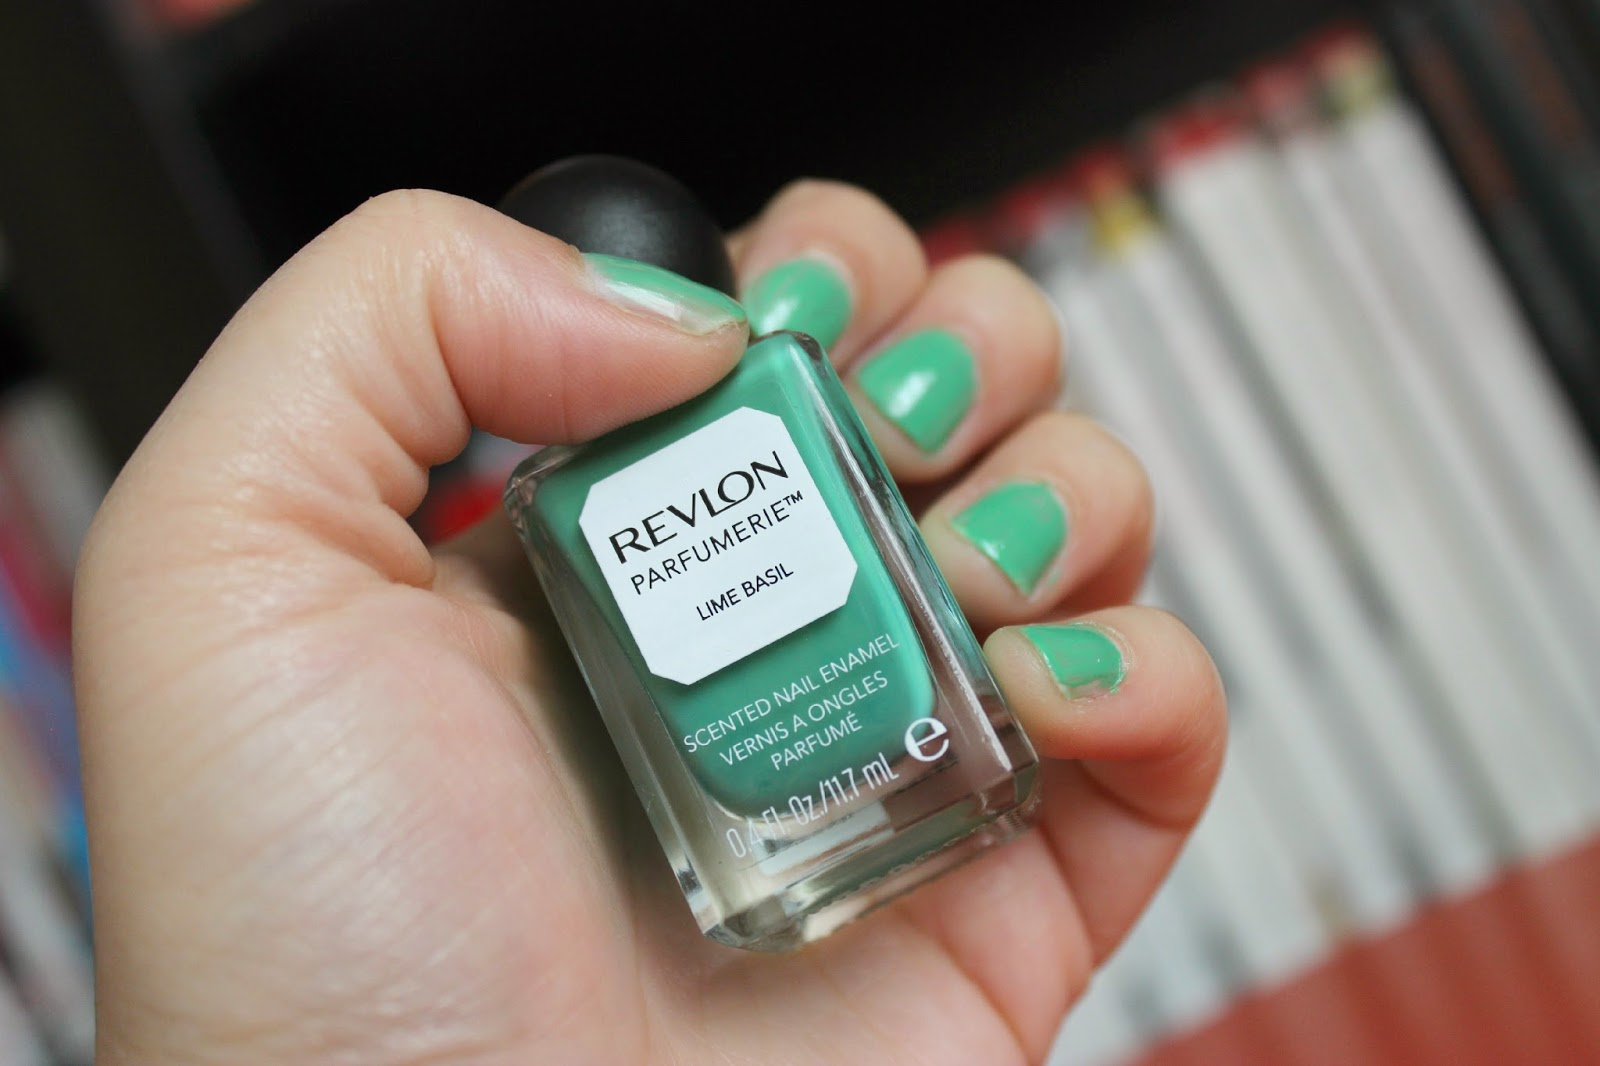 Picture of Revlon Parfumerie Scented Nail Enamel in Lime Basil